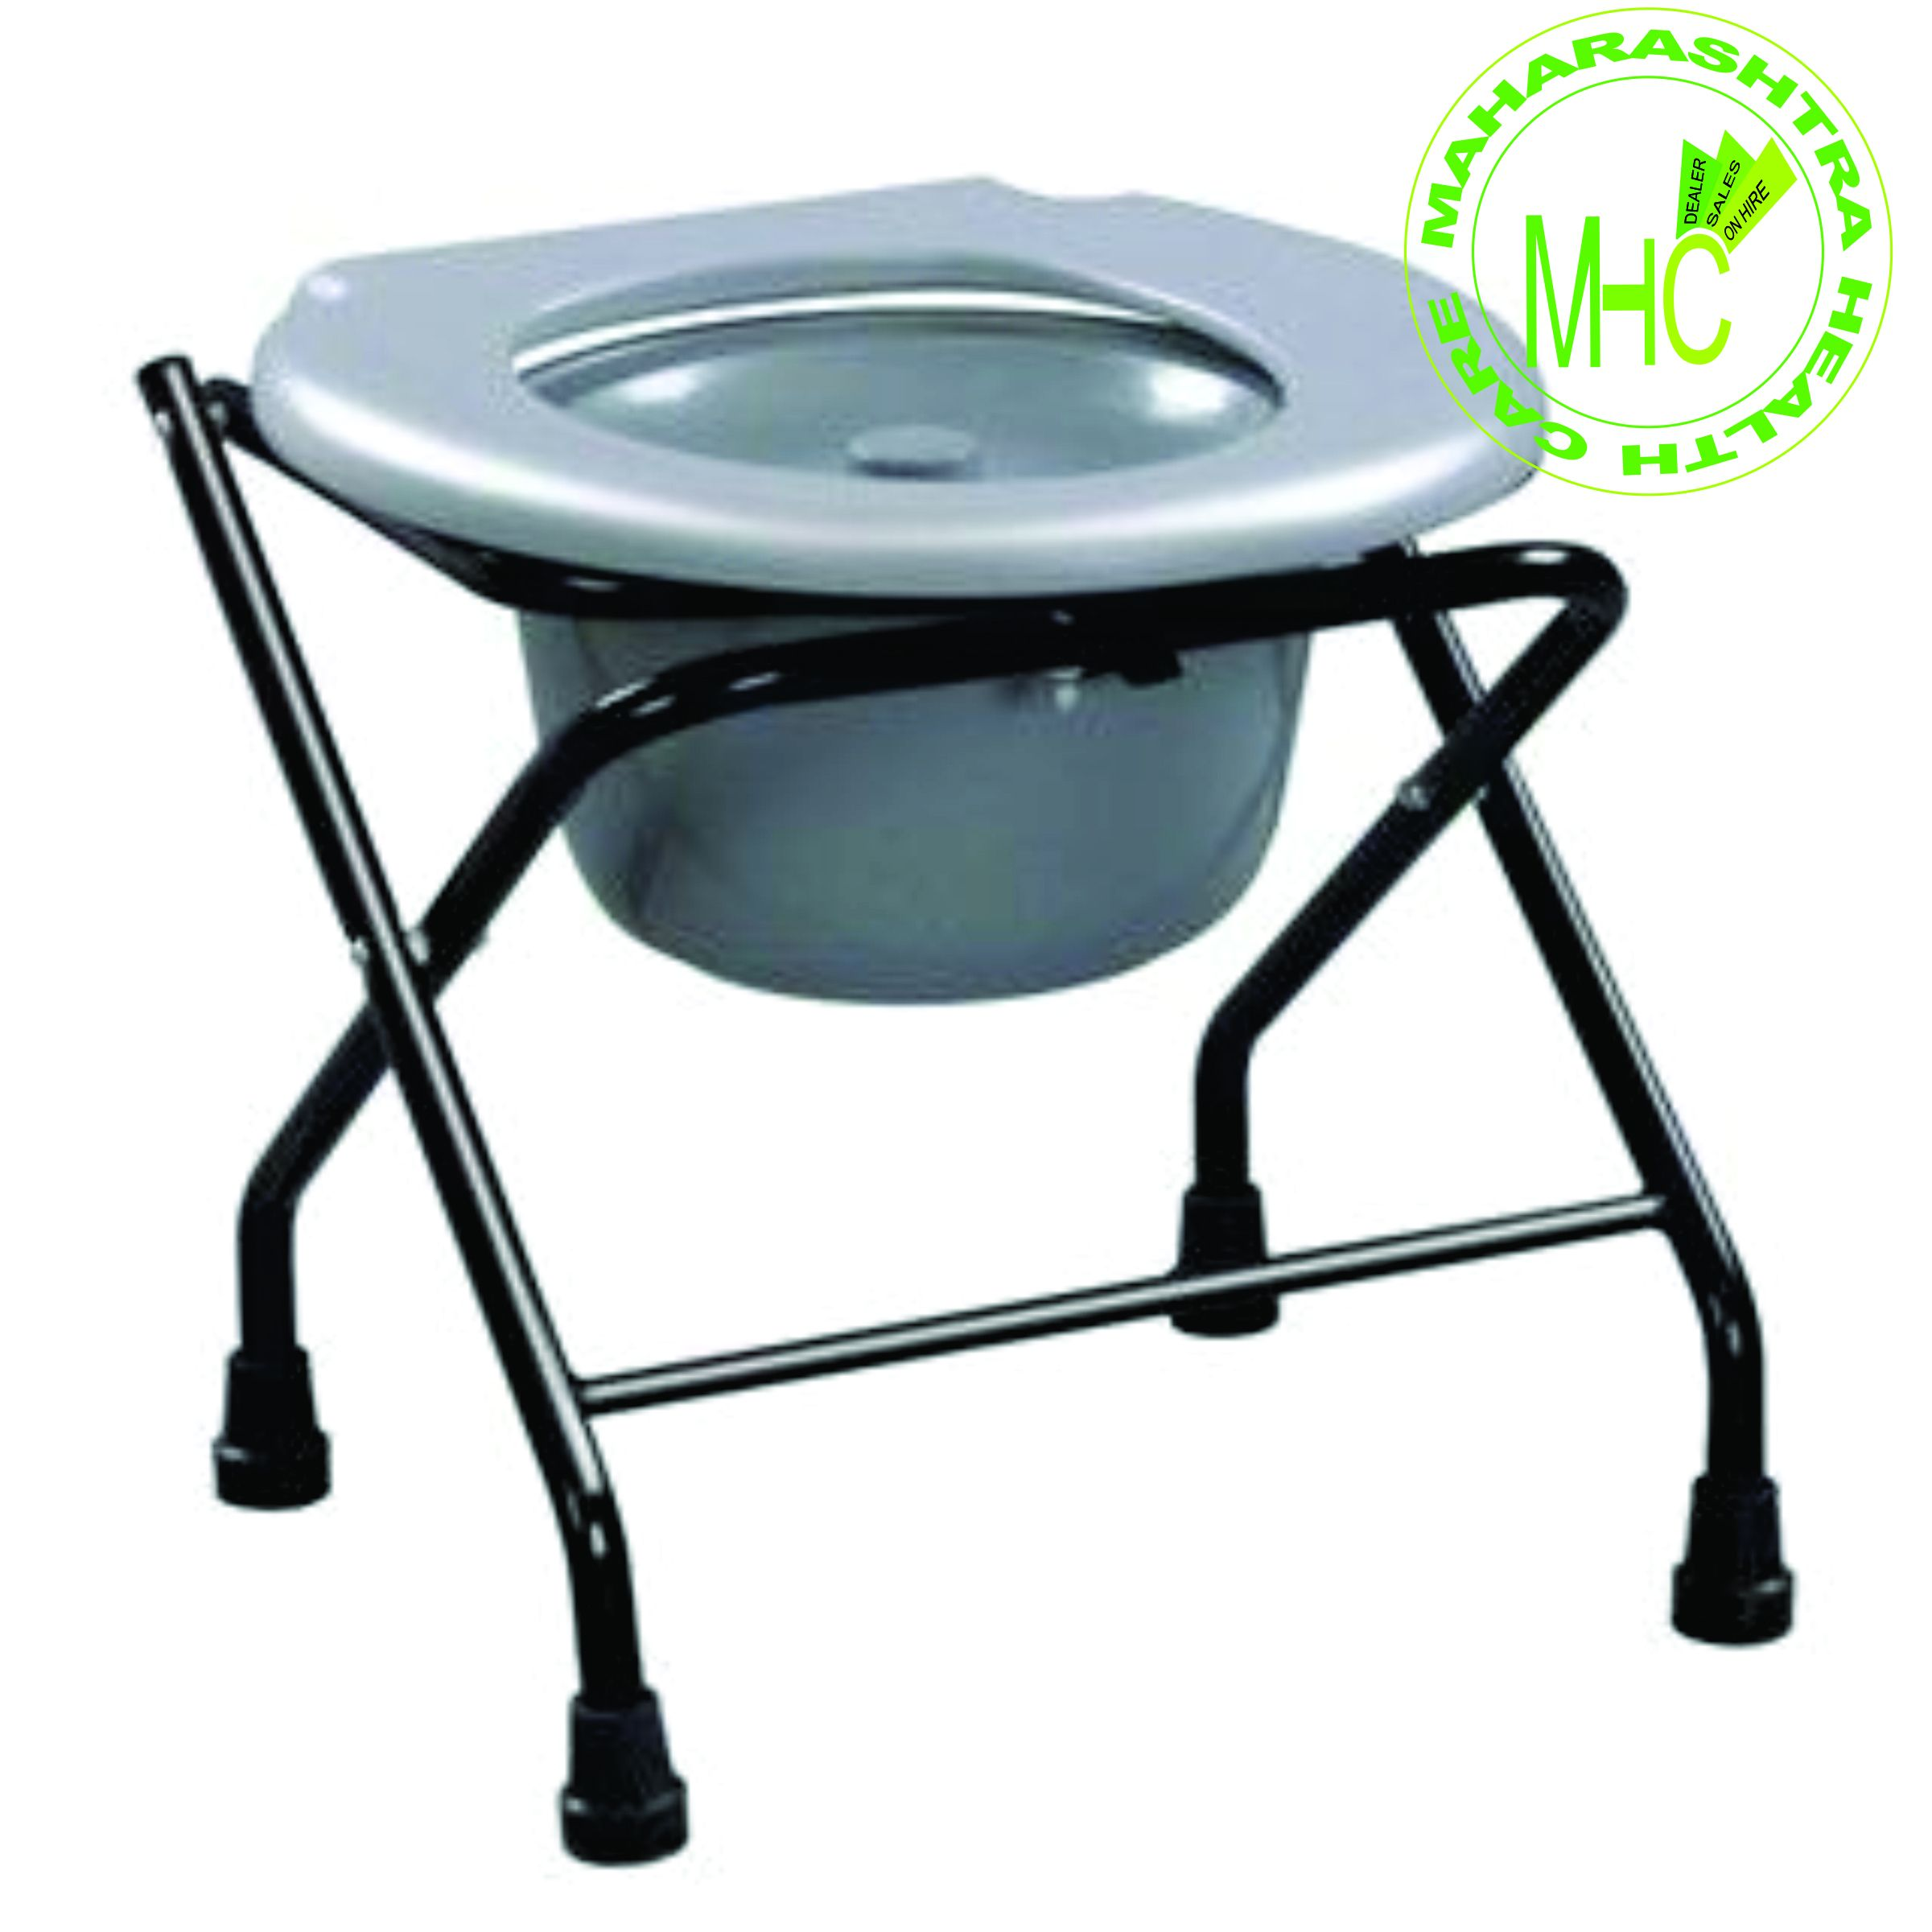 STOOL TYPE COMMODE. By utilizing our years of experience